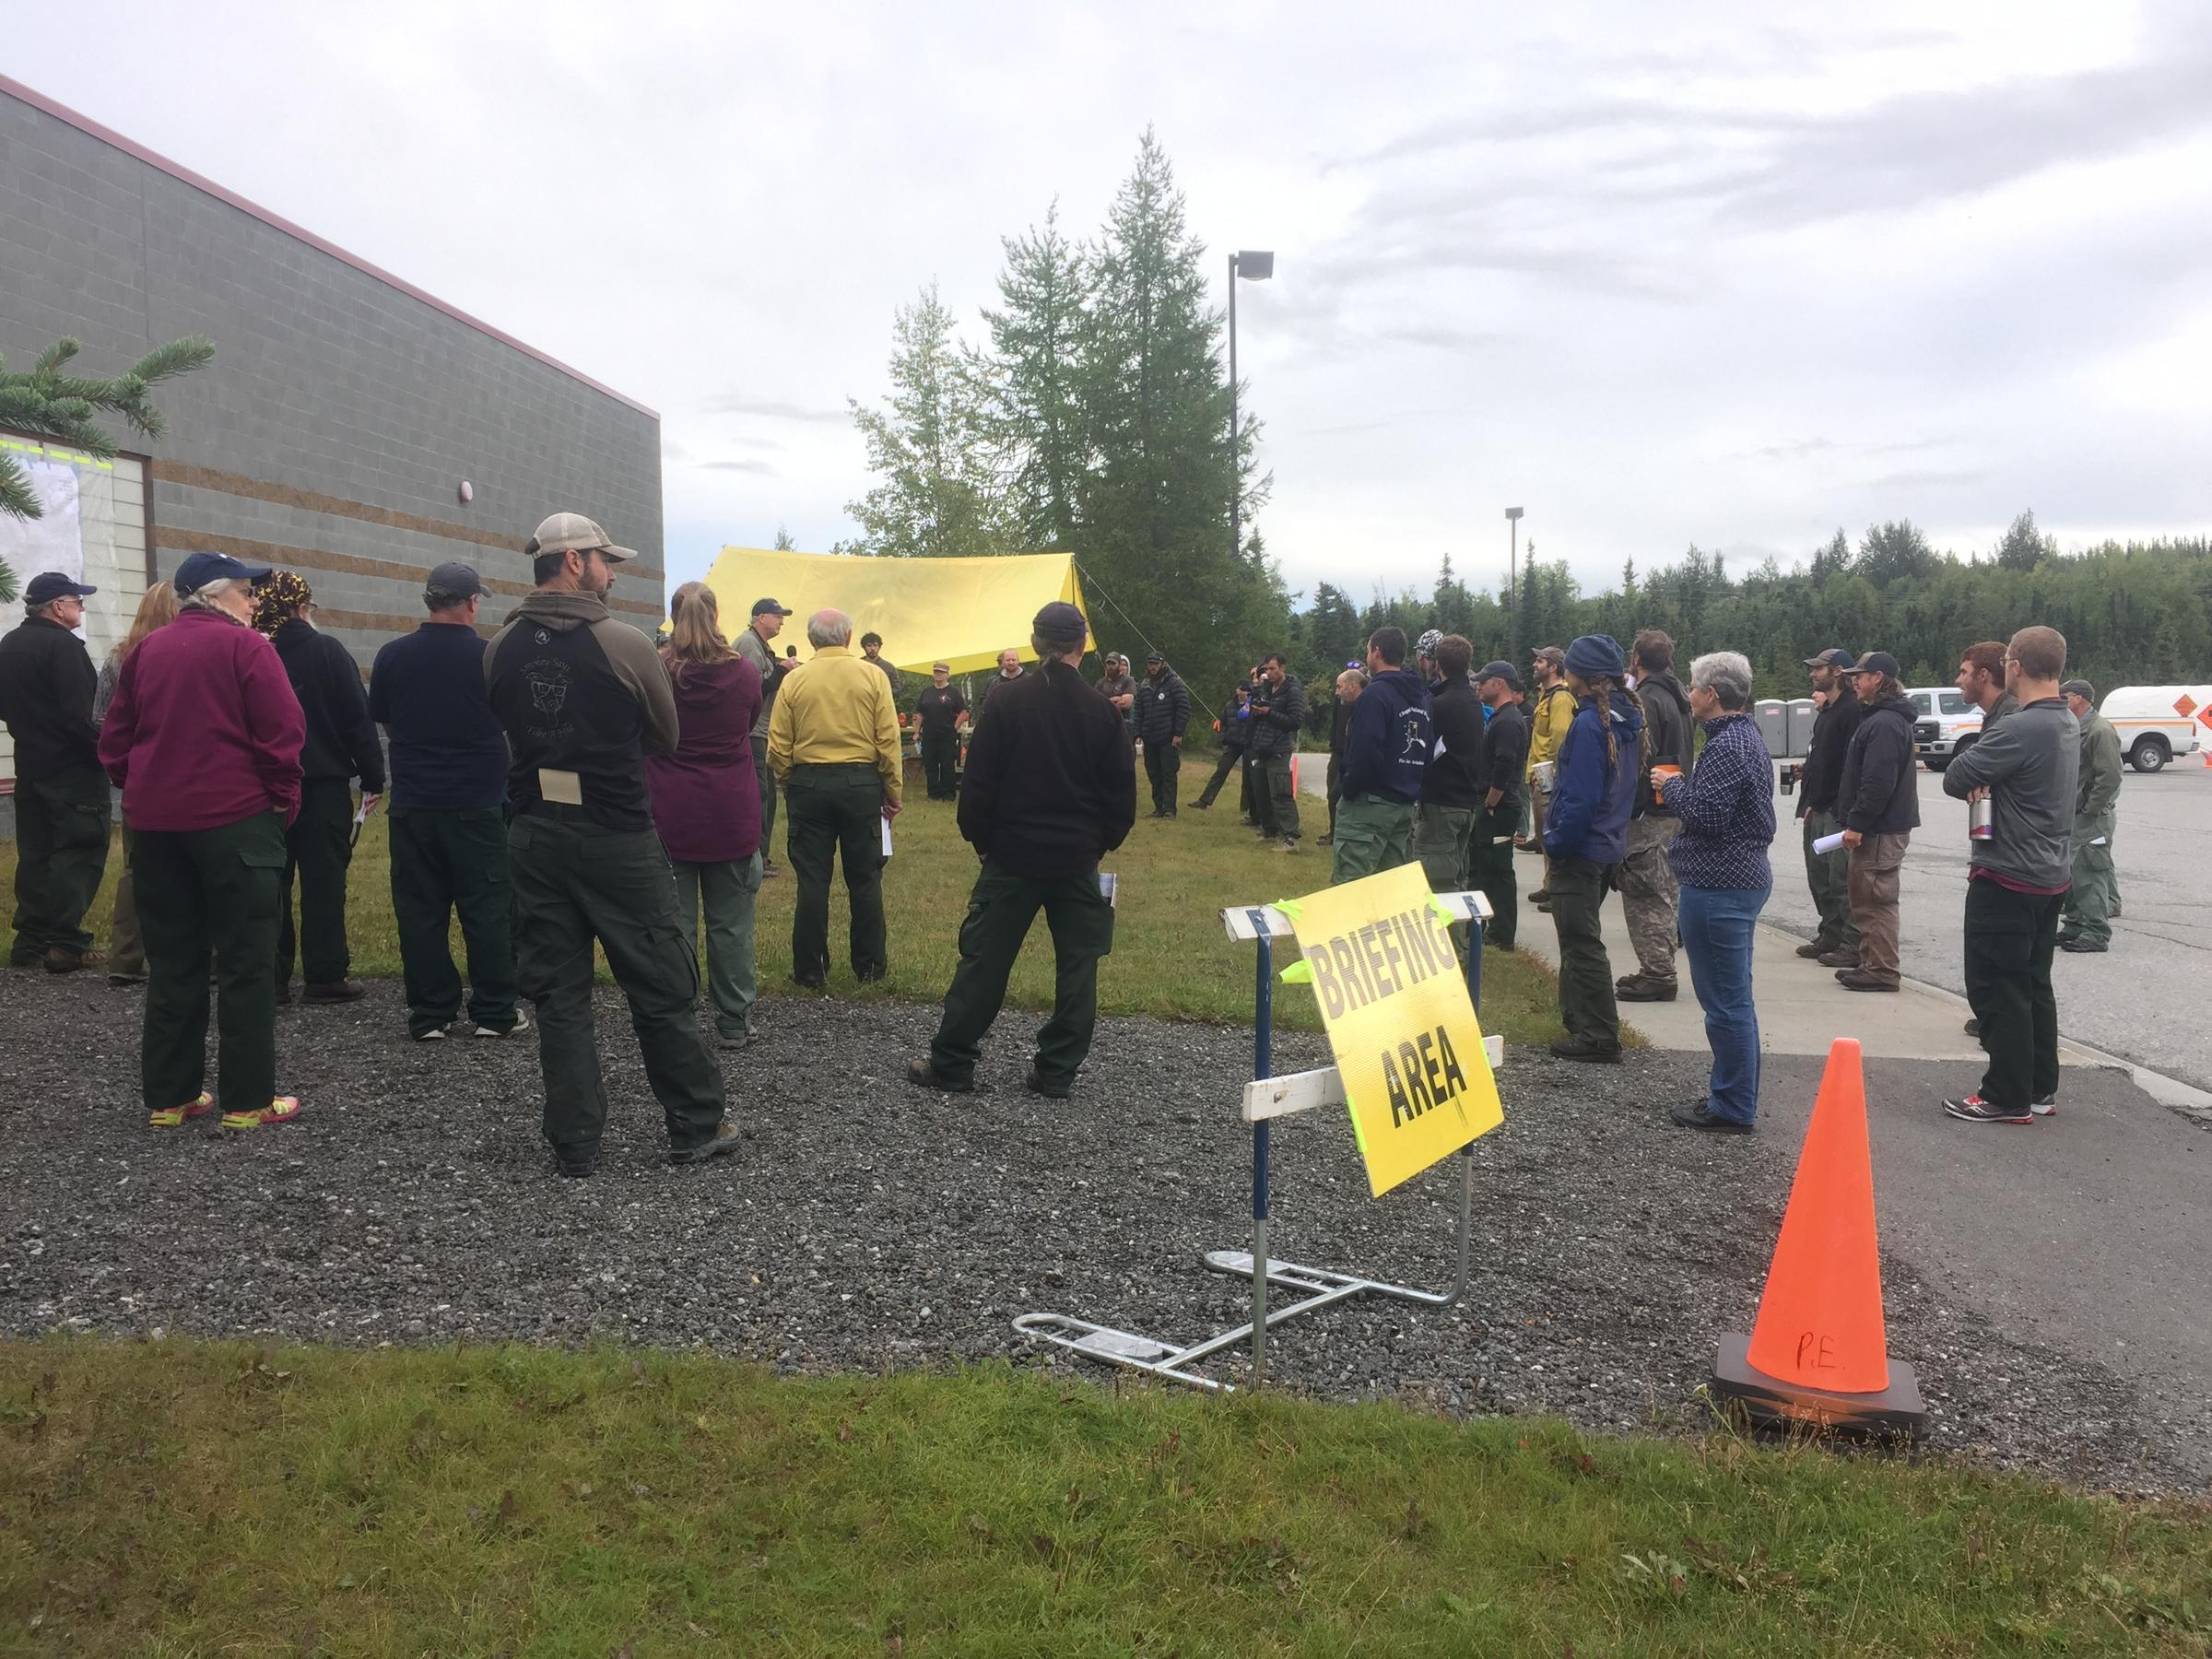 Fire responders at the McHugh fire daily briefing Tuesday morning. Alaska's Chena, Tanana Chiefs Conference and White Mountain firefighter crews are mopping up hot spots. (Photo by  Joaqlin Estus, KNBA - Anchorage)